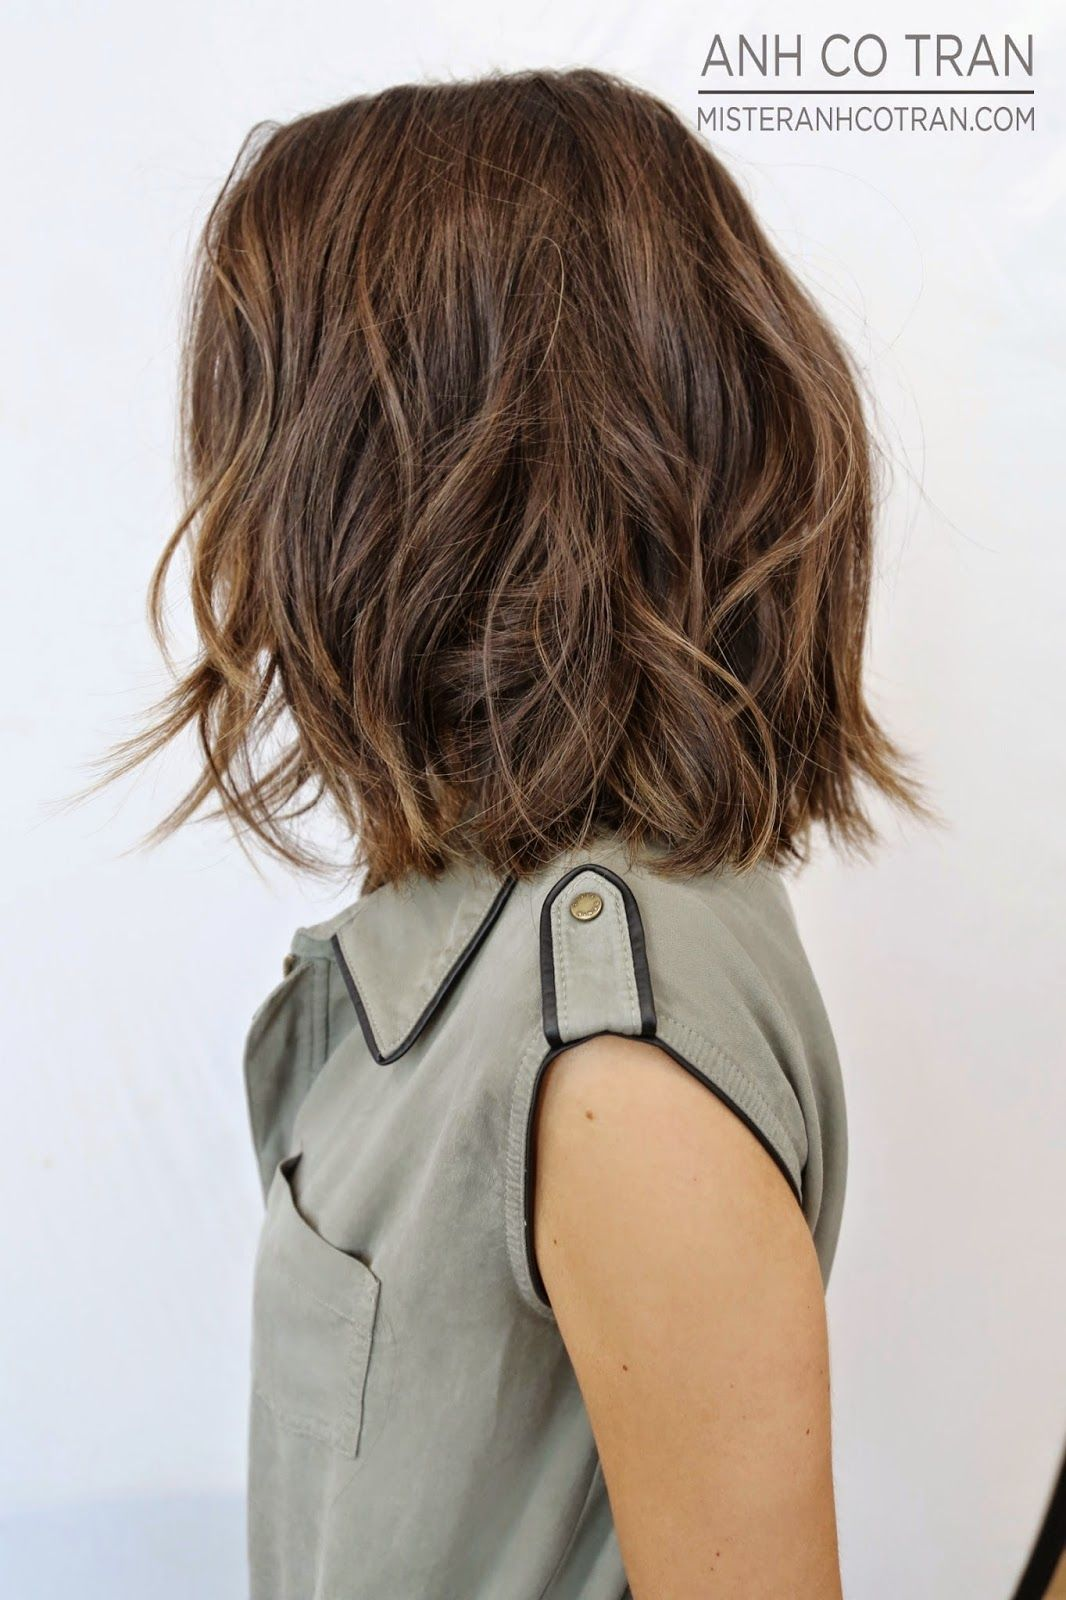 This hair is so cute thinking about cutting mine nice cutus